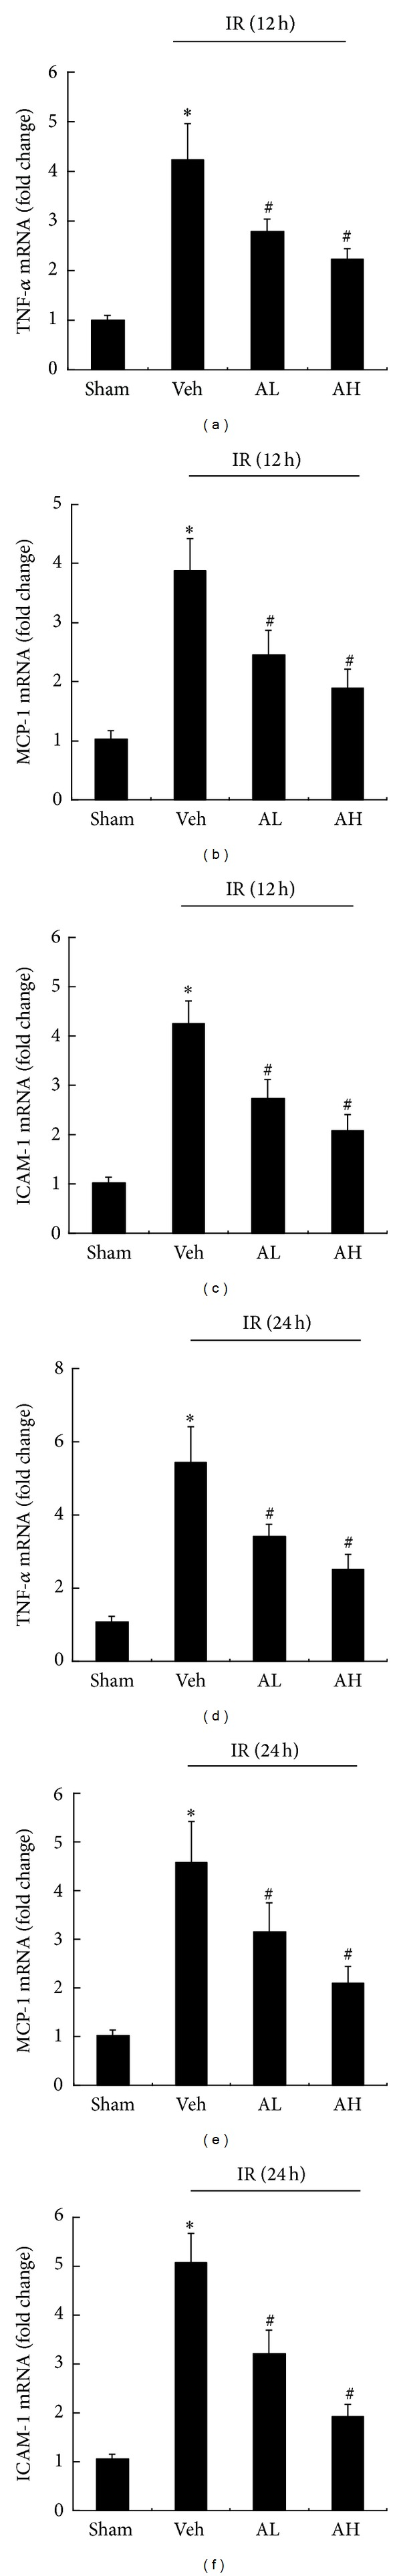 AS-IV downregulated the mRNA expression of TNF- α , MCP-1, and ICAM-1 in rats with ischemic AKI. Representative real-time PCR of TNF- α (a), MCP-1 (b), and ICAM-1 (c) in renal tissues from sham, vehicle-, or AS-IV-pretreated rats at 12 h of reperfusion. Representative real-time PCR of TNF- α (d), MCP-1 (e), and ICAM-1 (f) in renal tissues from sham, vehicle-, or AS-IV-pretreated rats at 24 h of reperfusion. Results are expressed as mean ± SD. * P